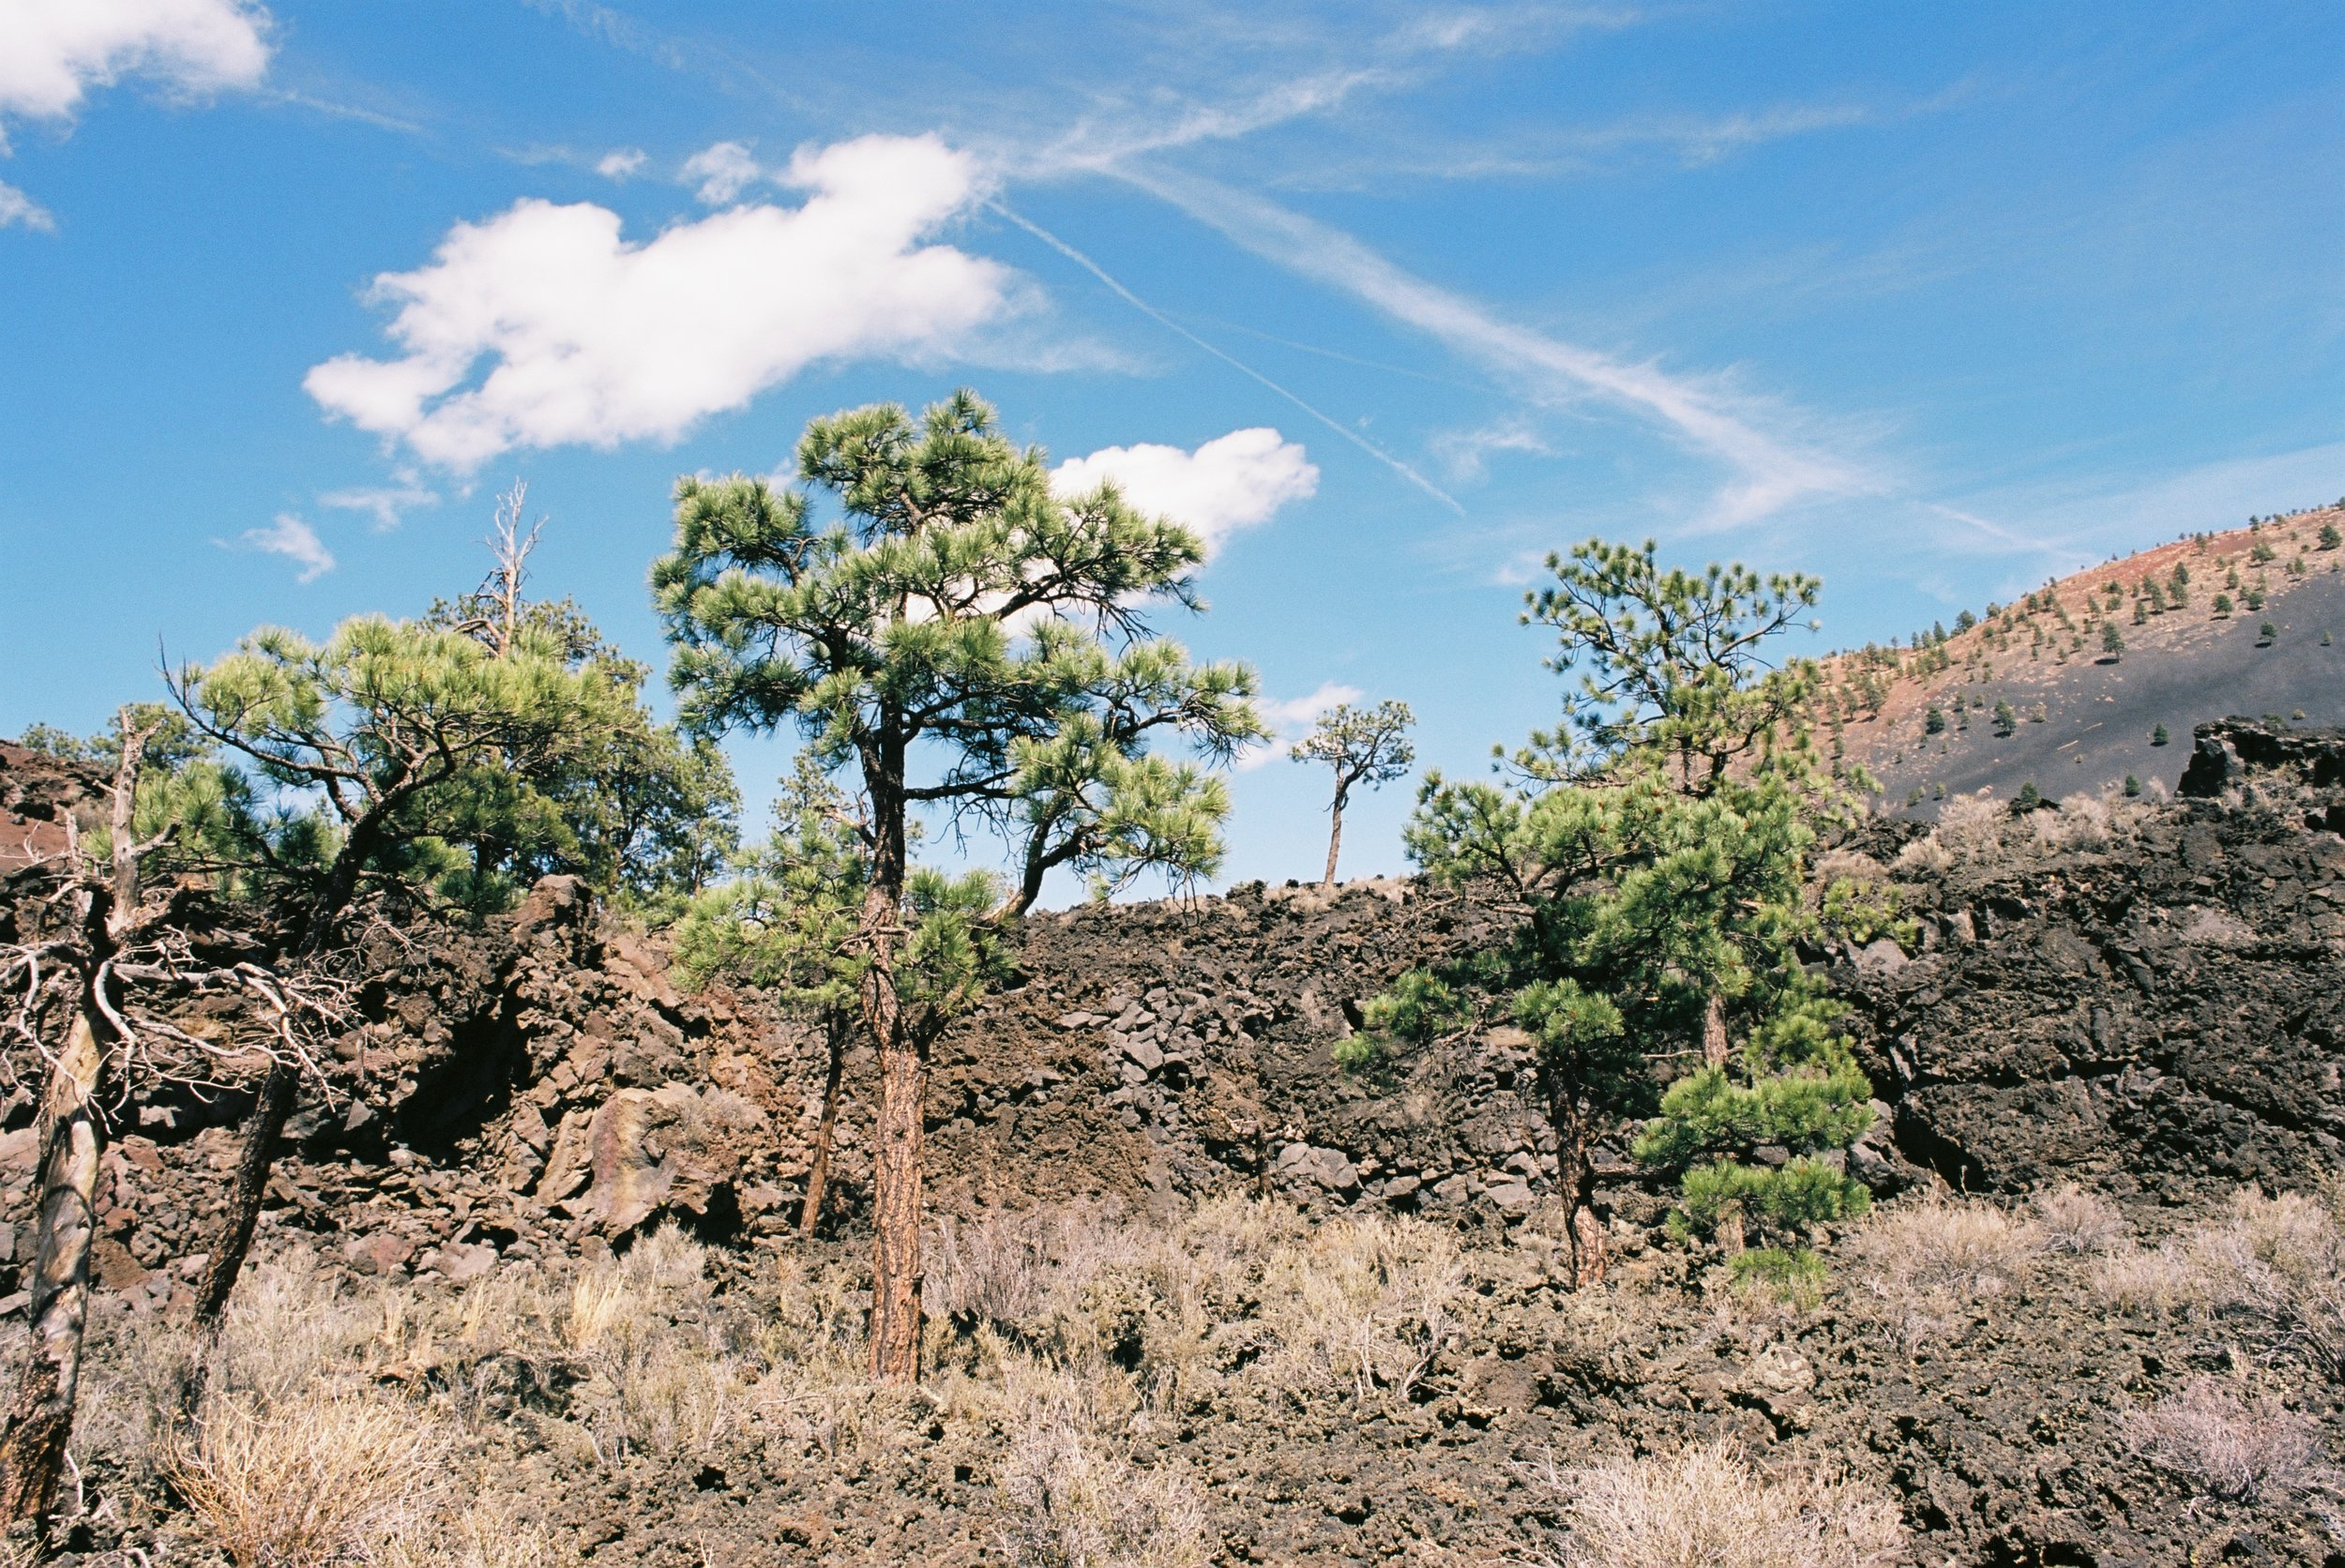 Trees growing out of leftover crater and volcano debris